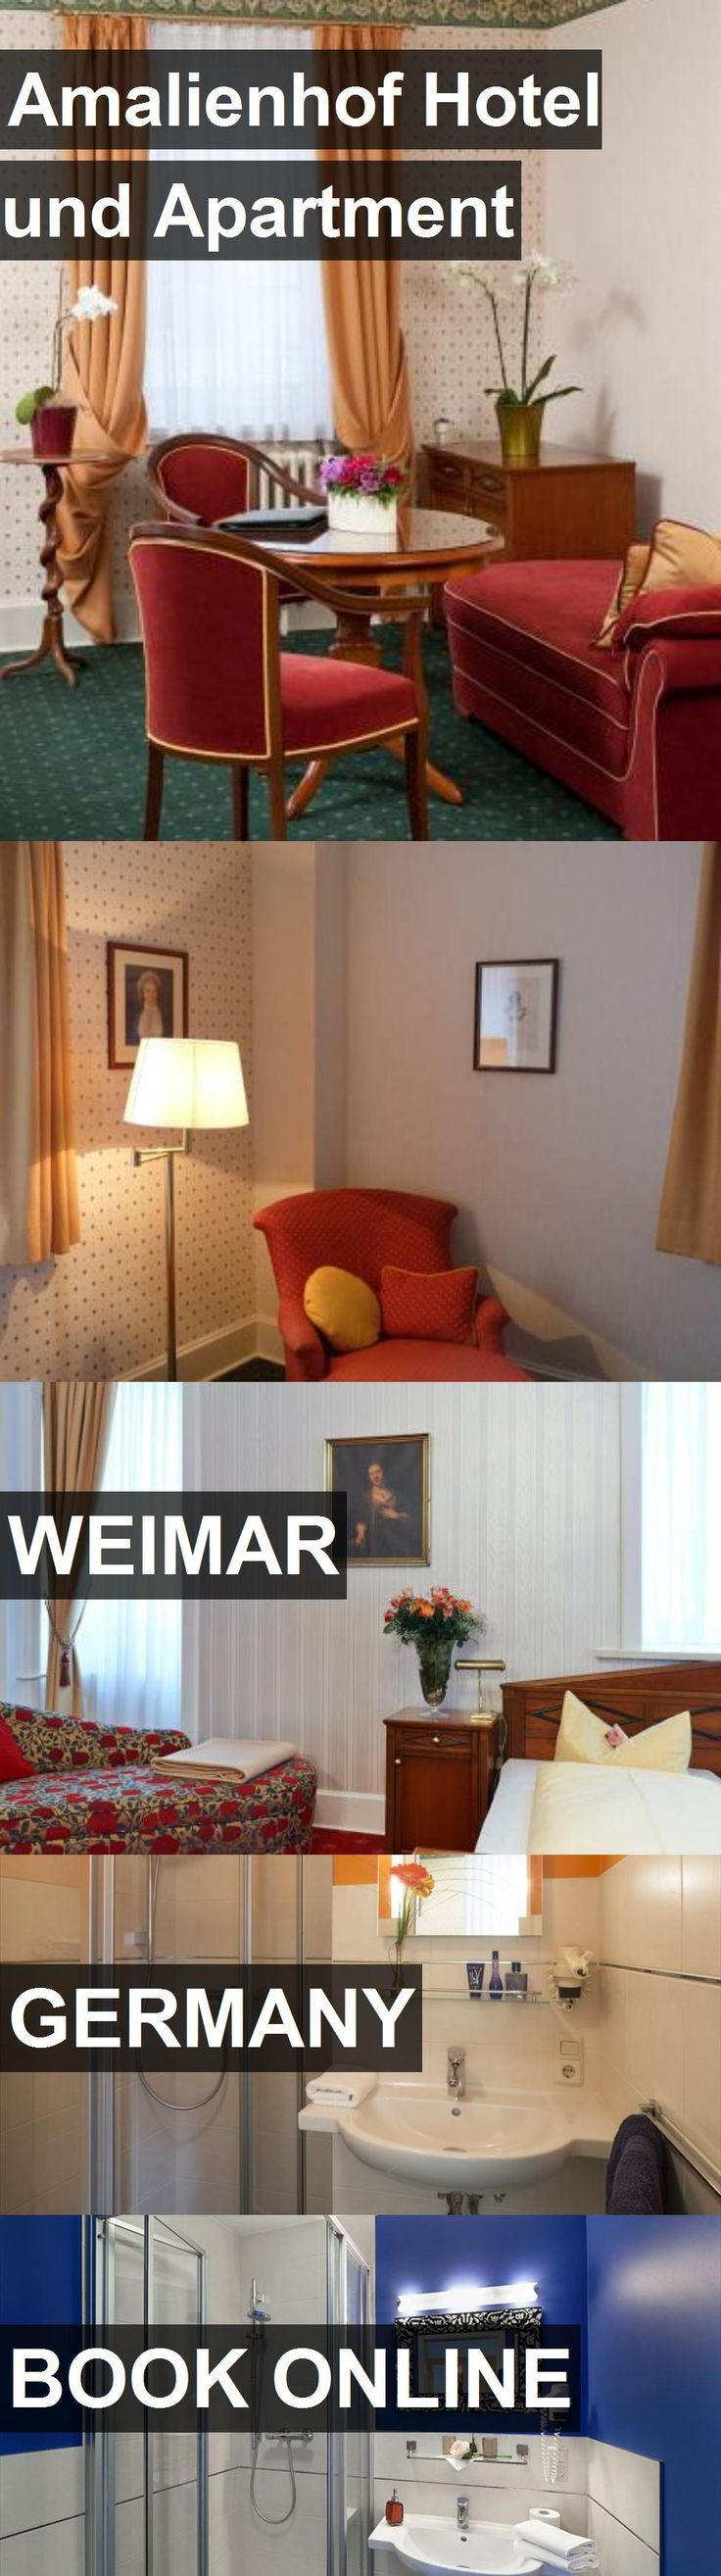 Amalienhof Hotel und Apartment in Weimar, Germany. For more information, photos, reviews and best prices please follow the link. #Germany #Weimar #travel #vacation #hotel #apartment